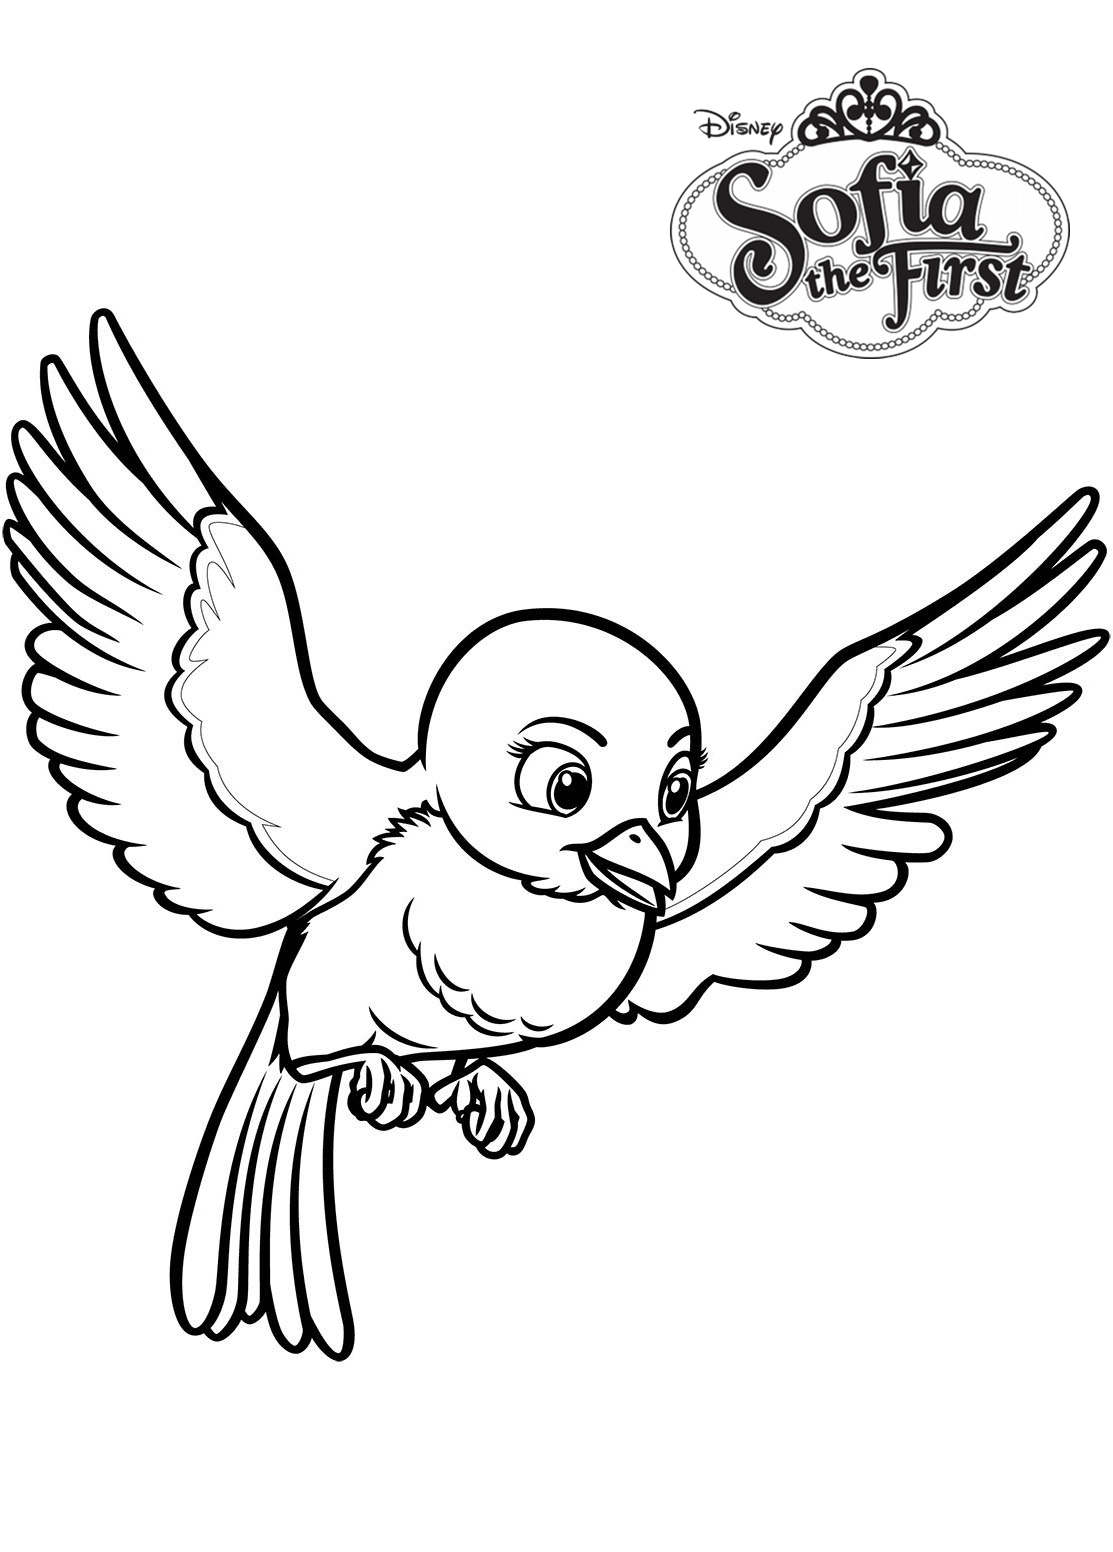 Free Sofia The First Coloring Pages Mia the Bluebird printable